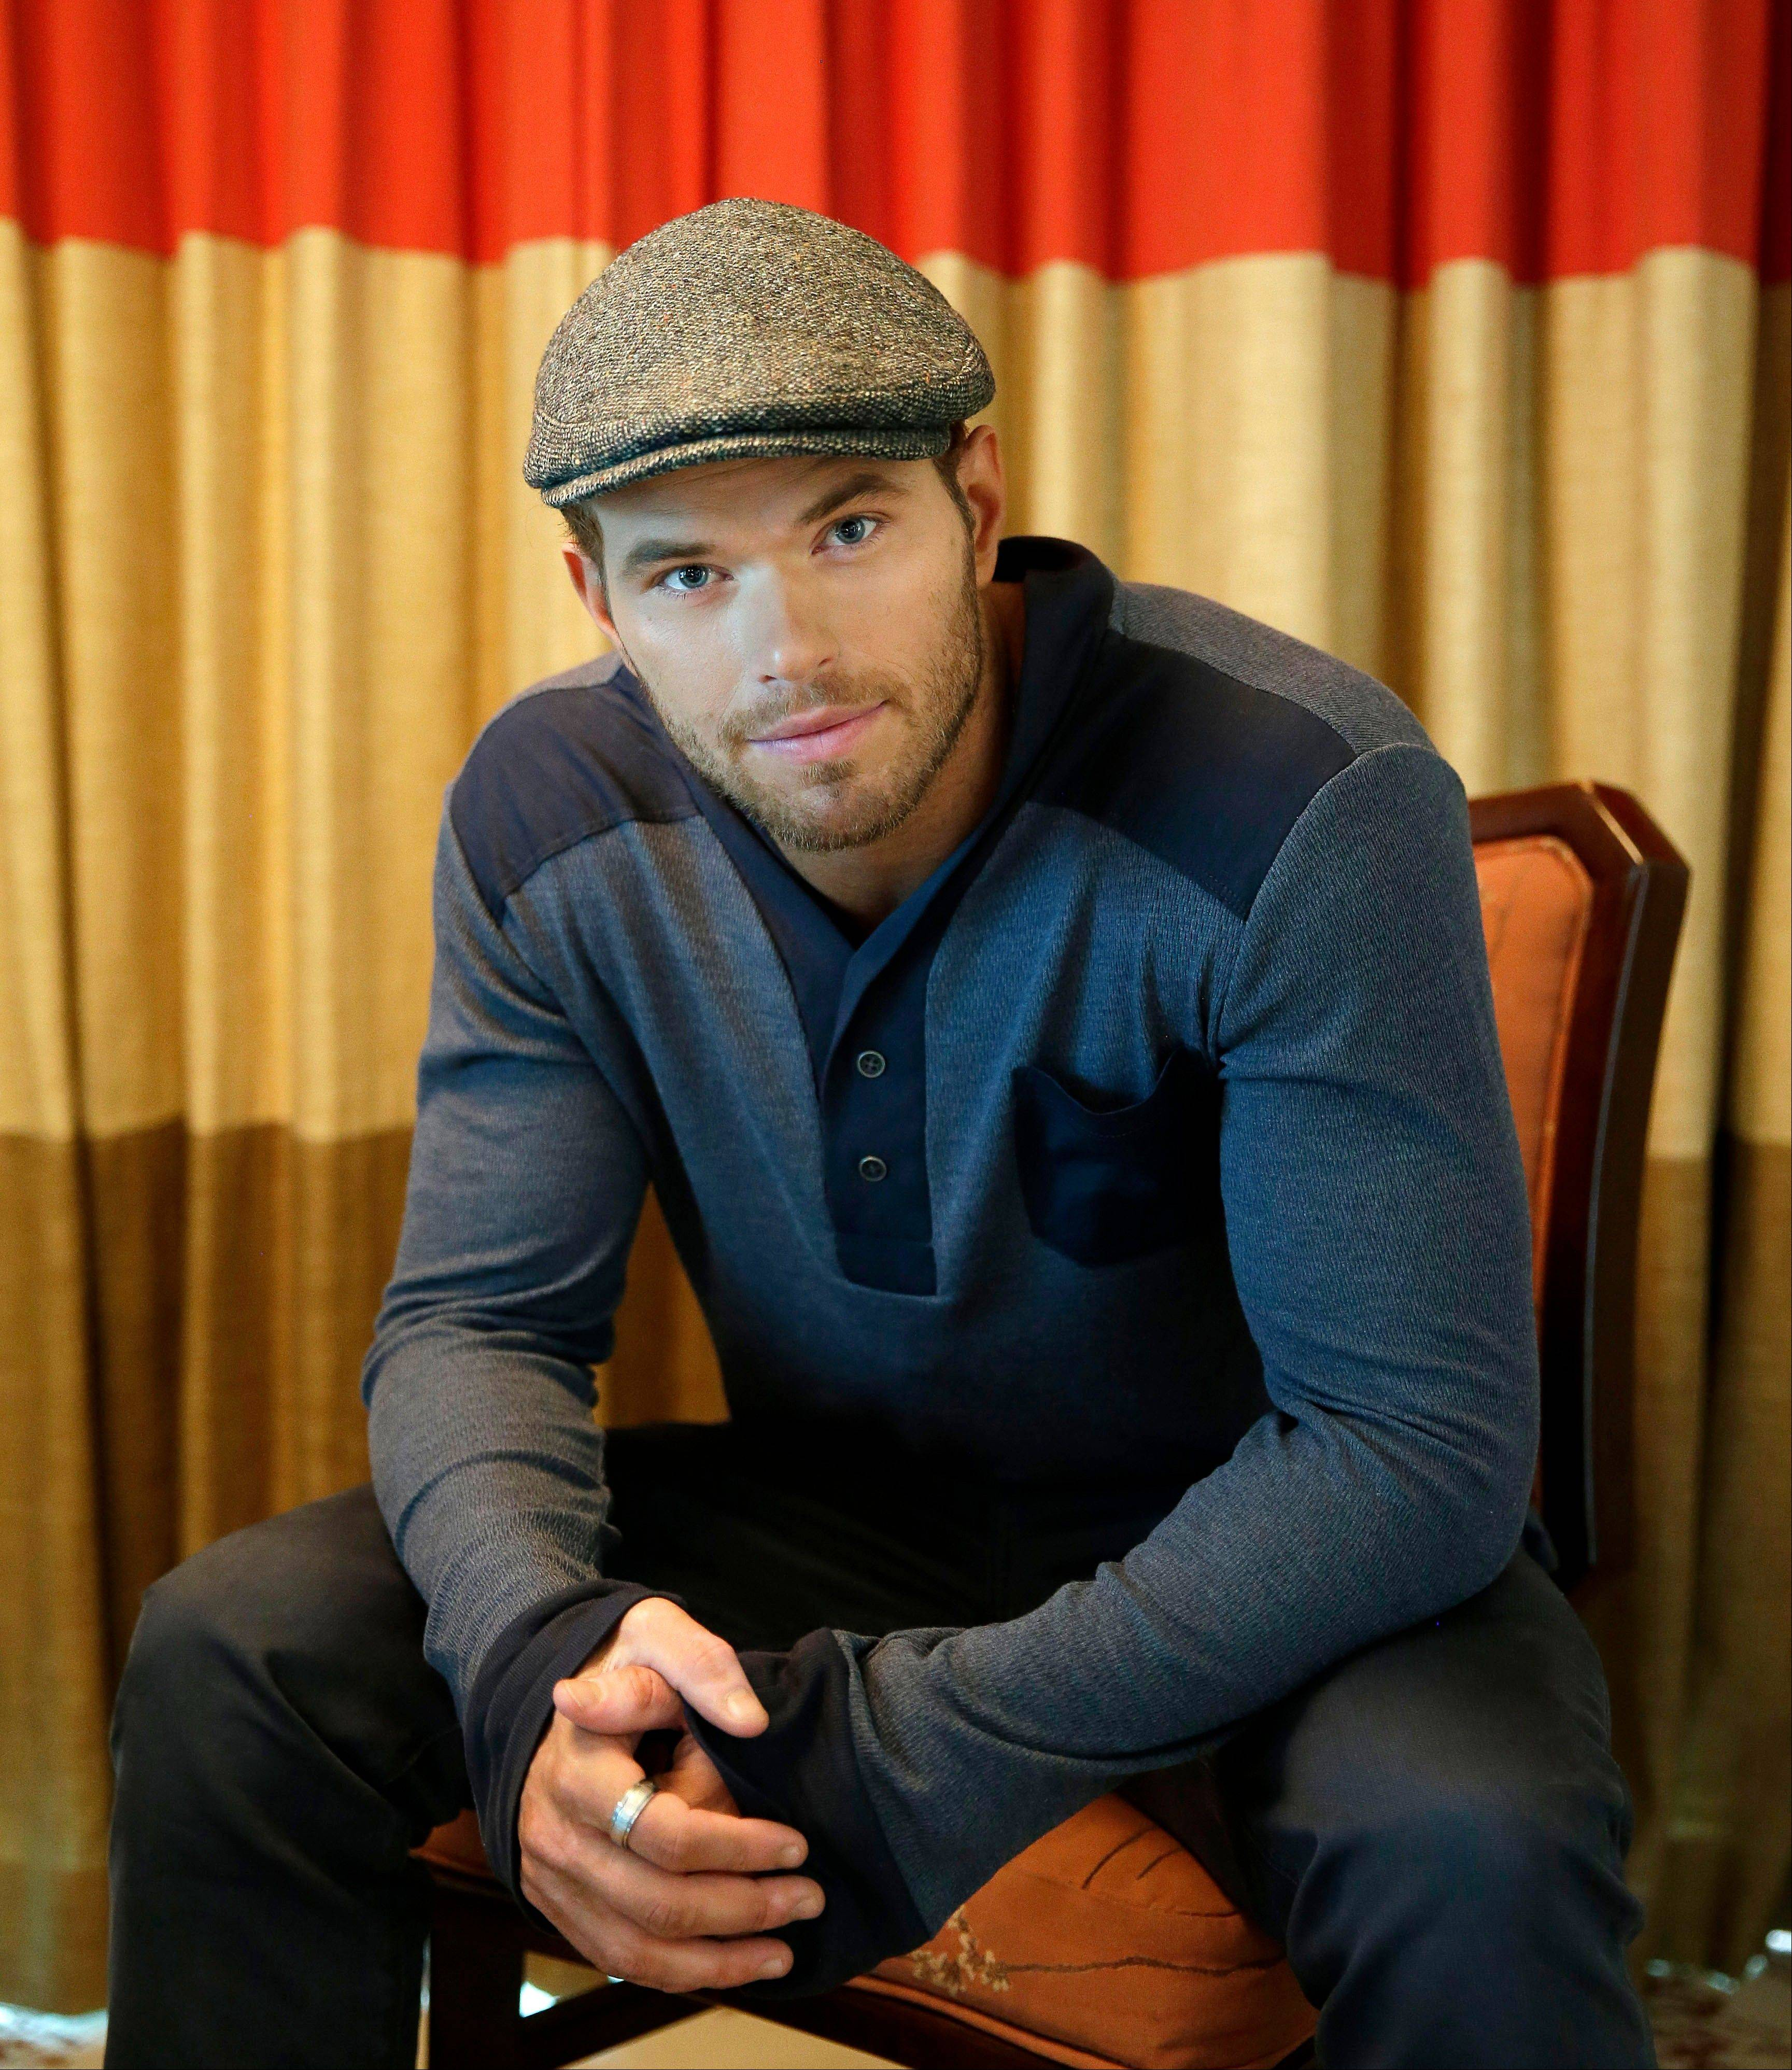 Actor-designer Kellan Lutz is promoting his clothing line Abbot + Main�s pre-spring 2014 collection.